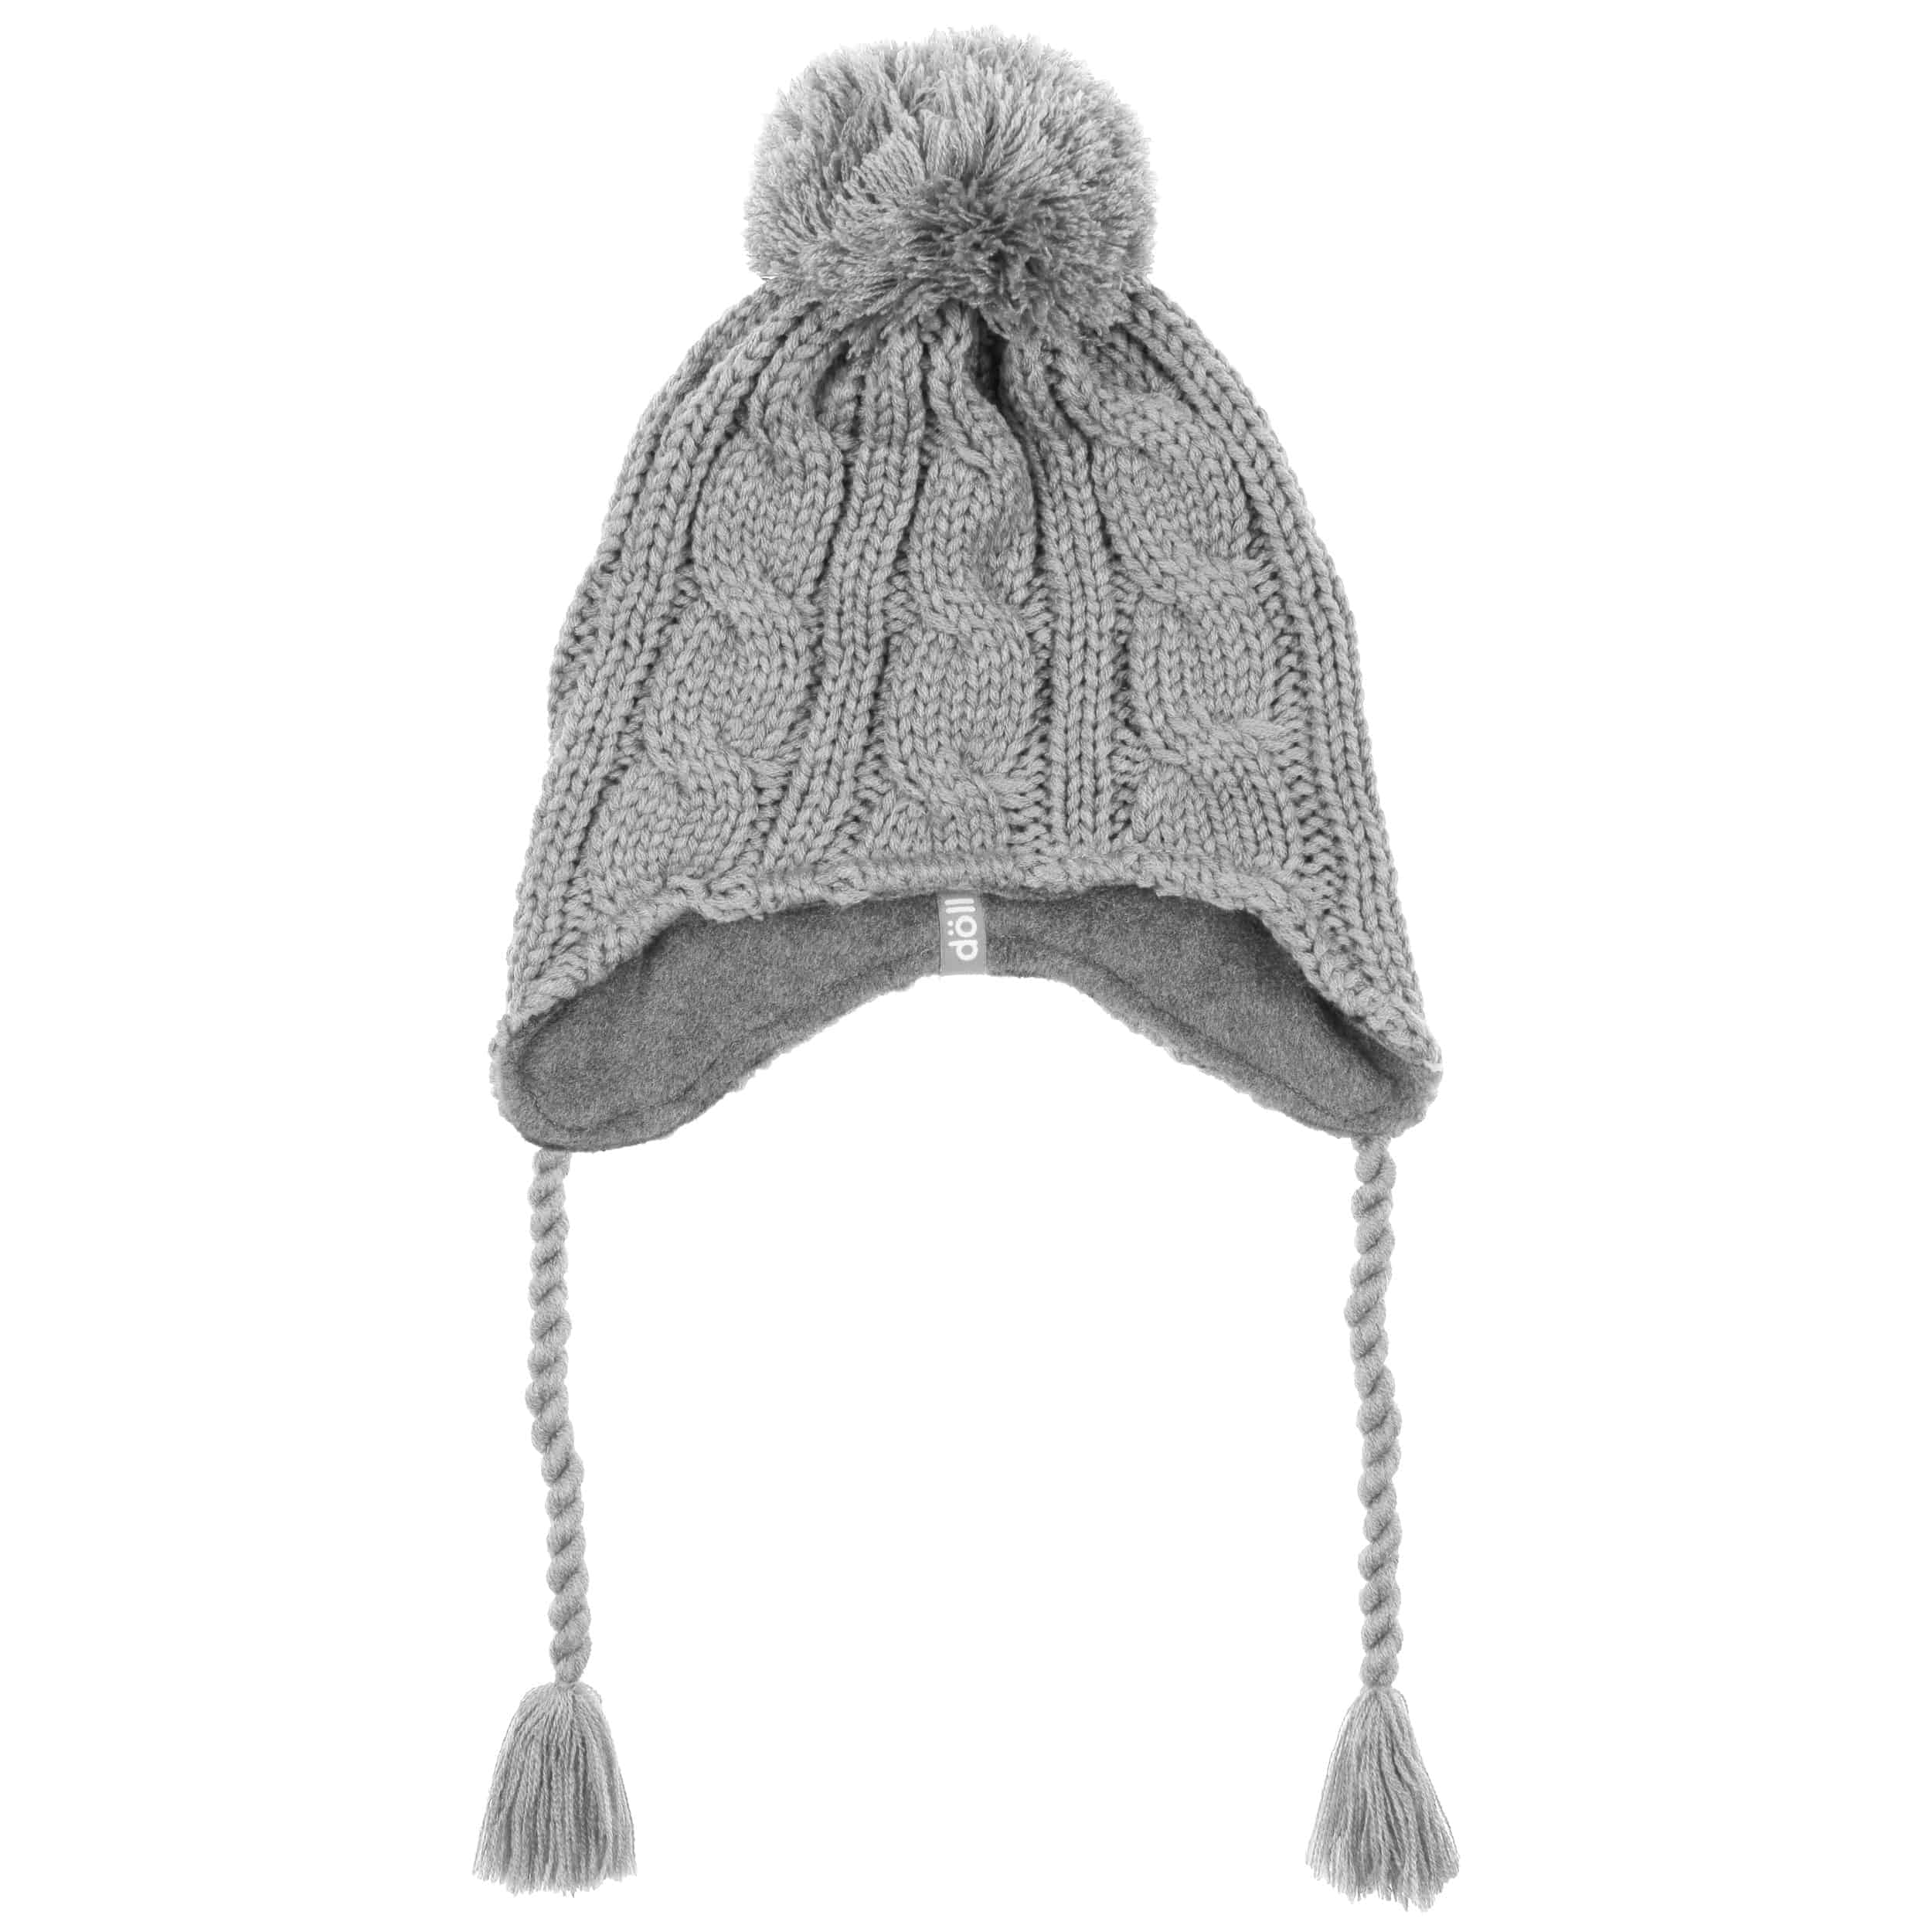 ae5363684cd ... Peruvian Cable Knit Hat by Döll - light grey 1 ...